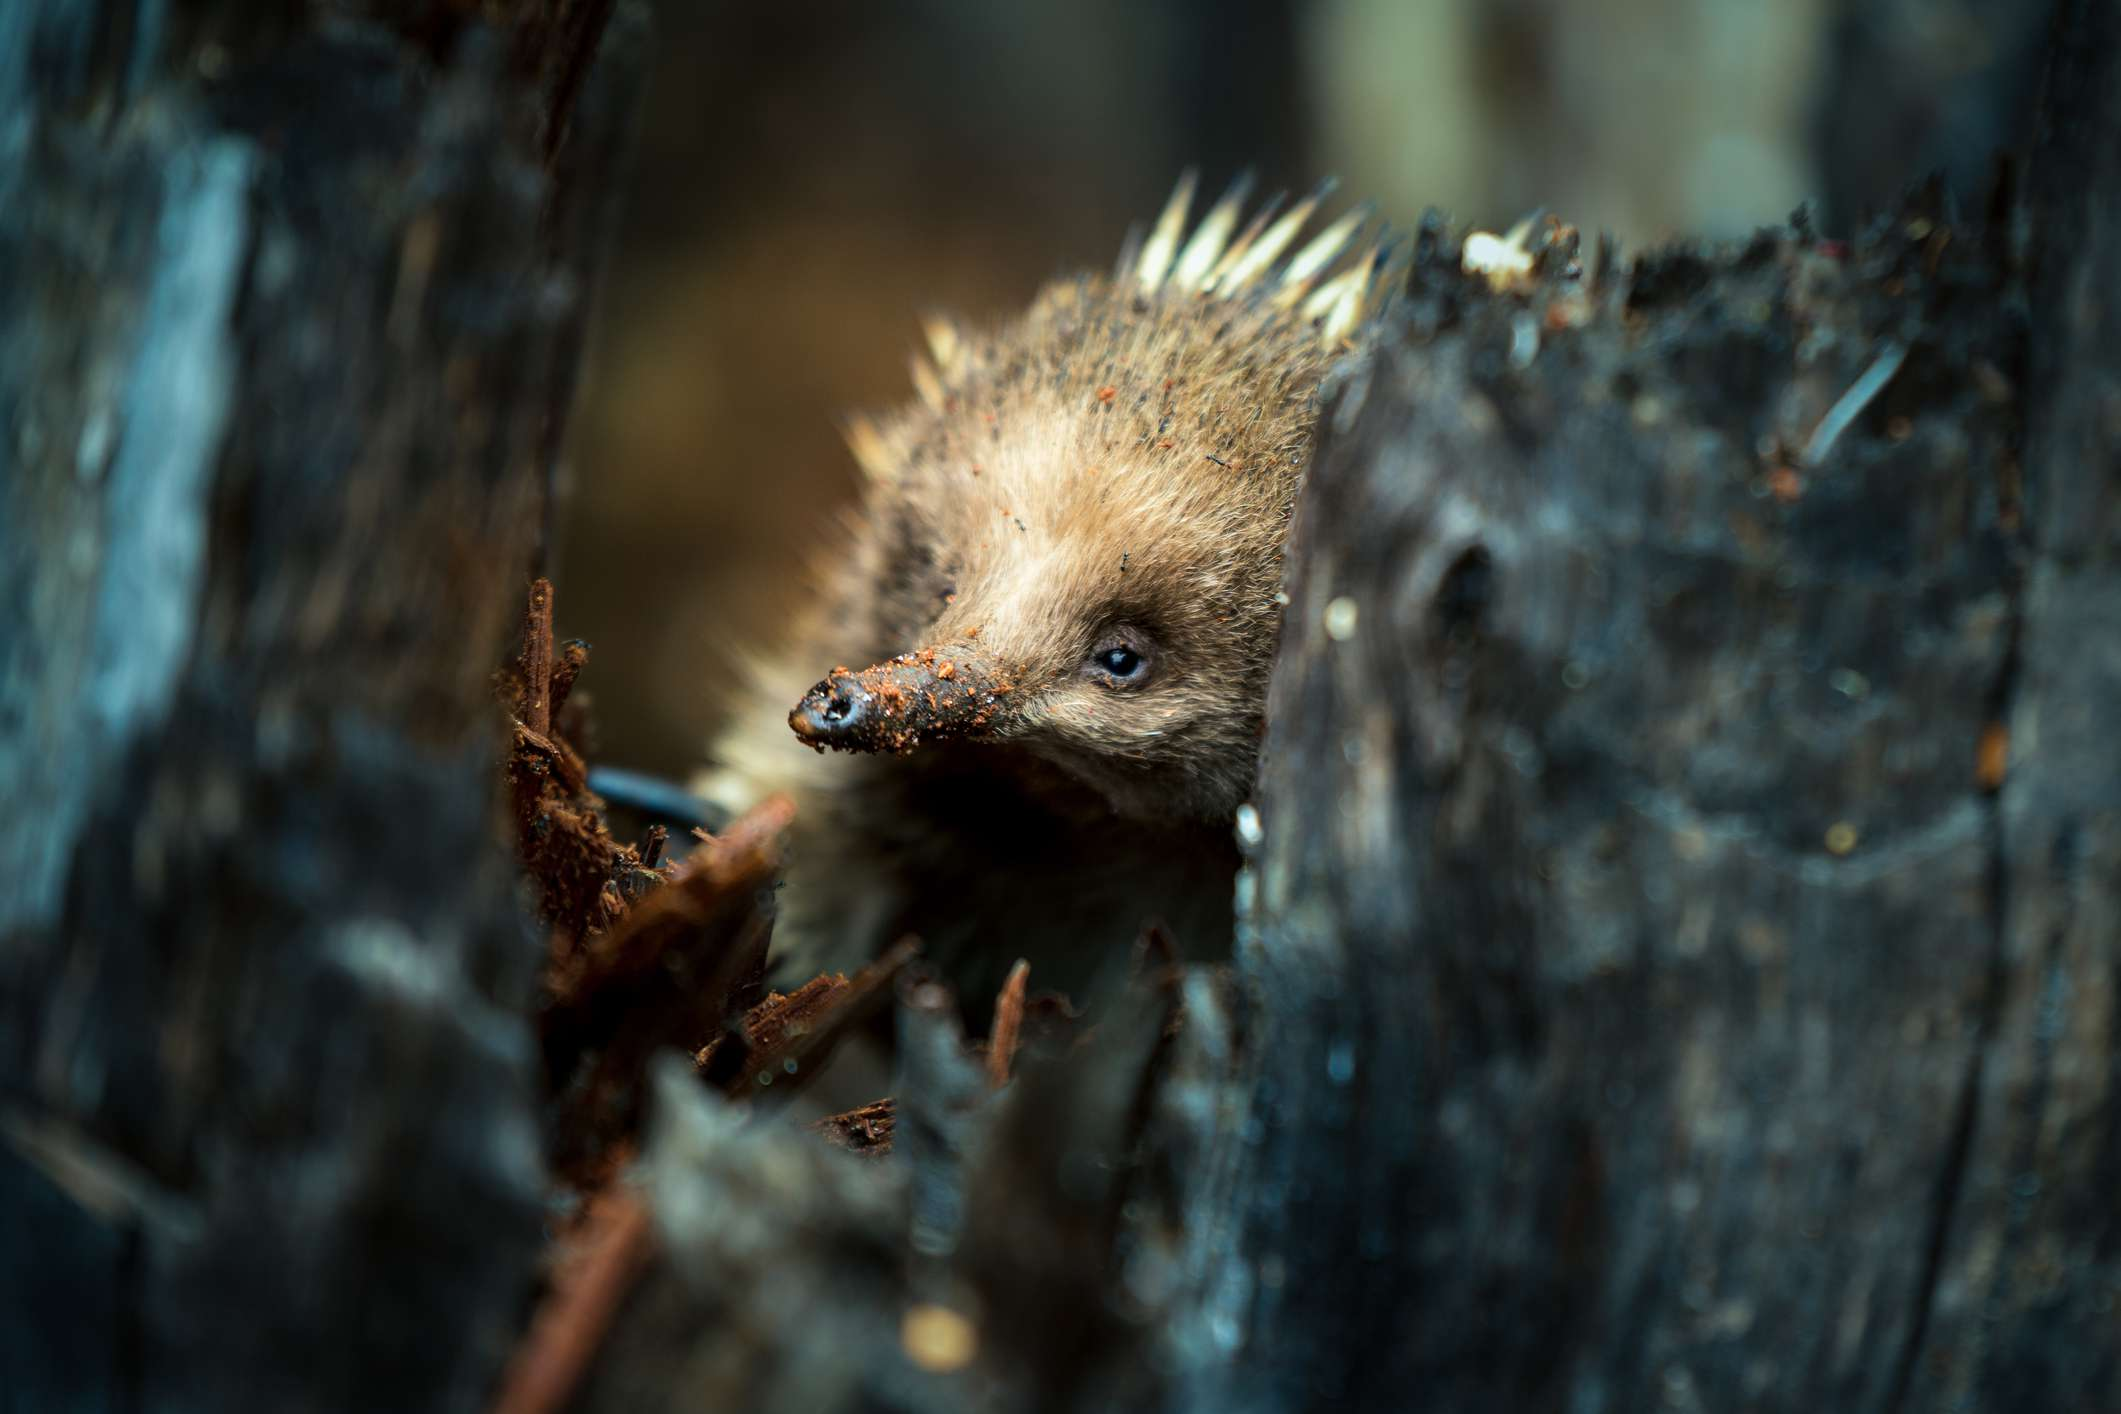 Close up of an echidna digging for food in tree trunks